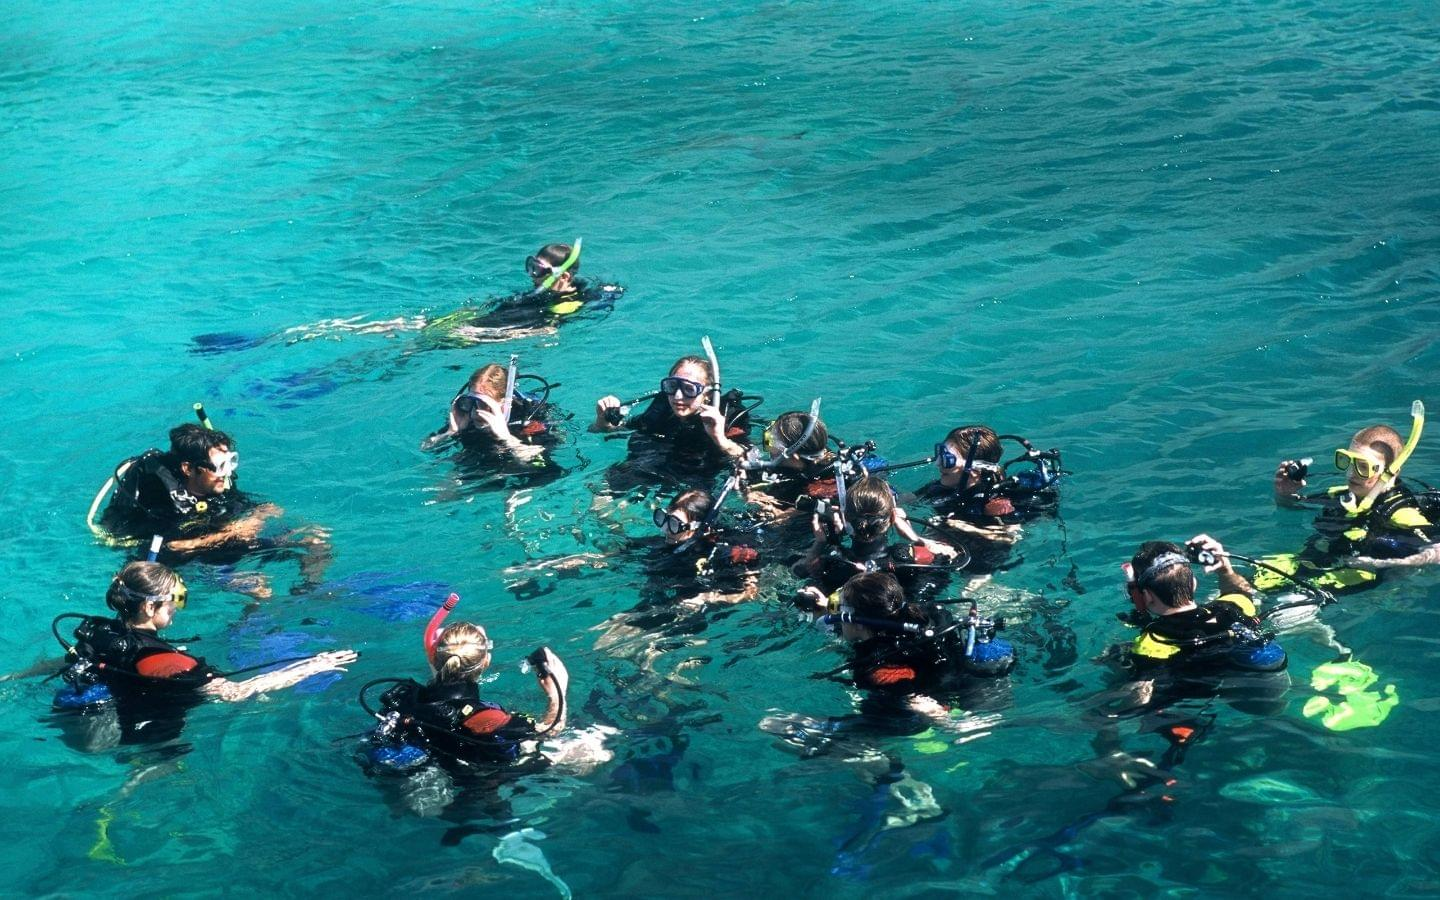 scuba diving instructor leading a group of divers in a lesson